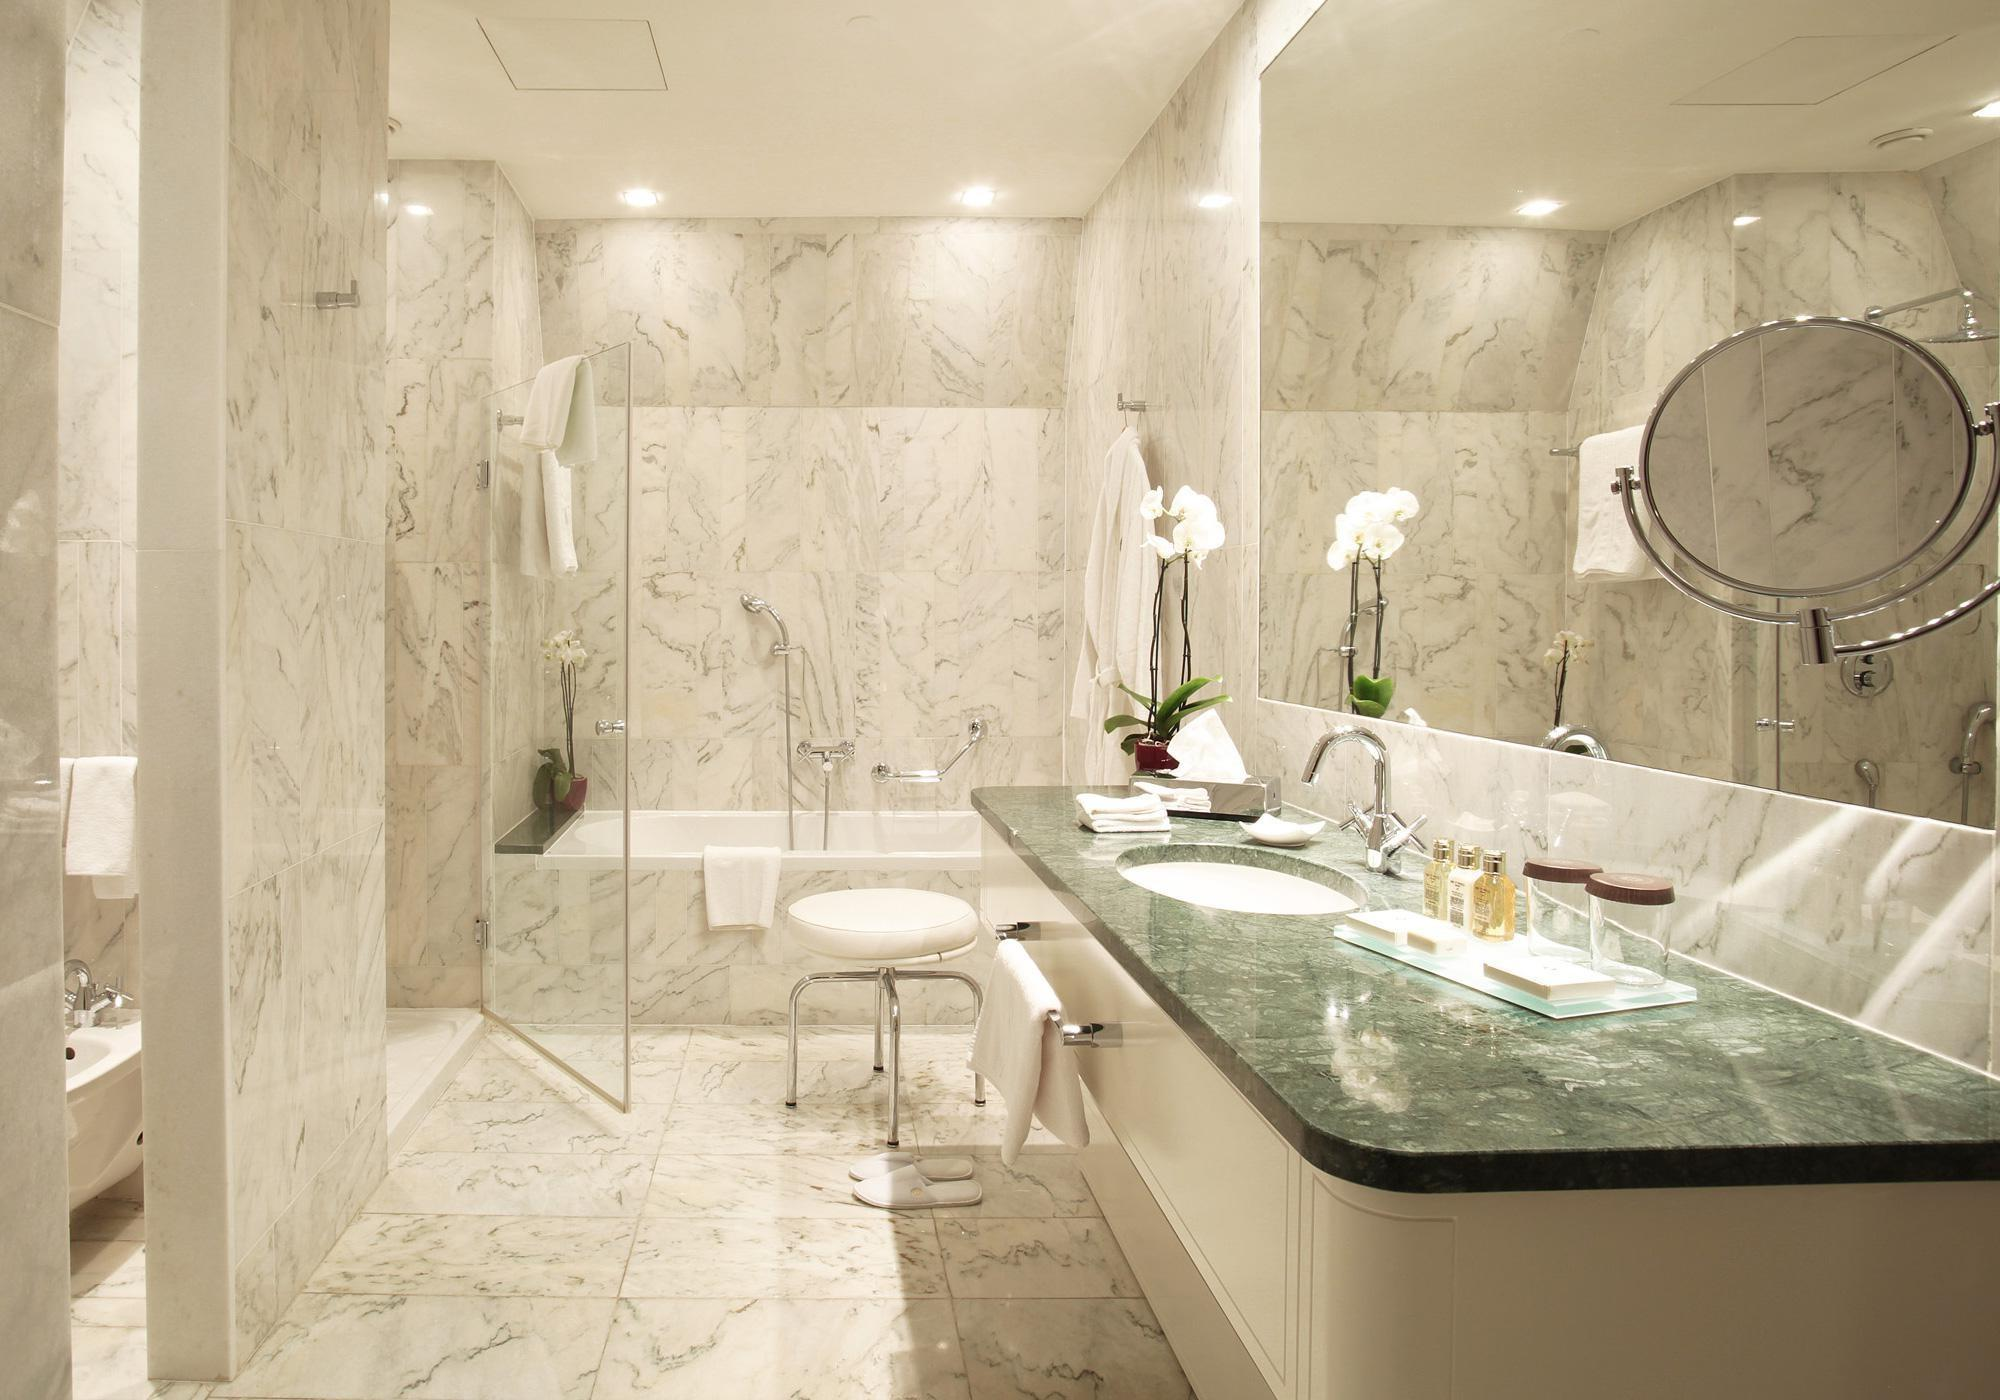 6 High End Design Additions For Luxury Bathrooms My